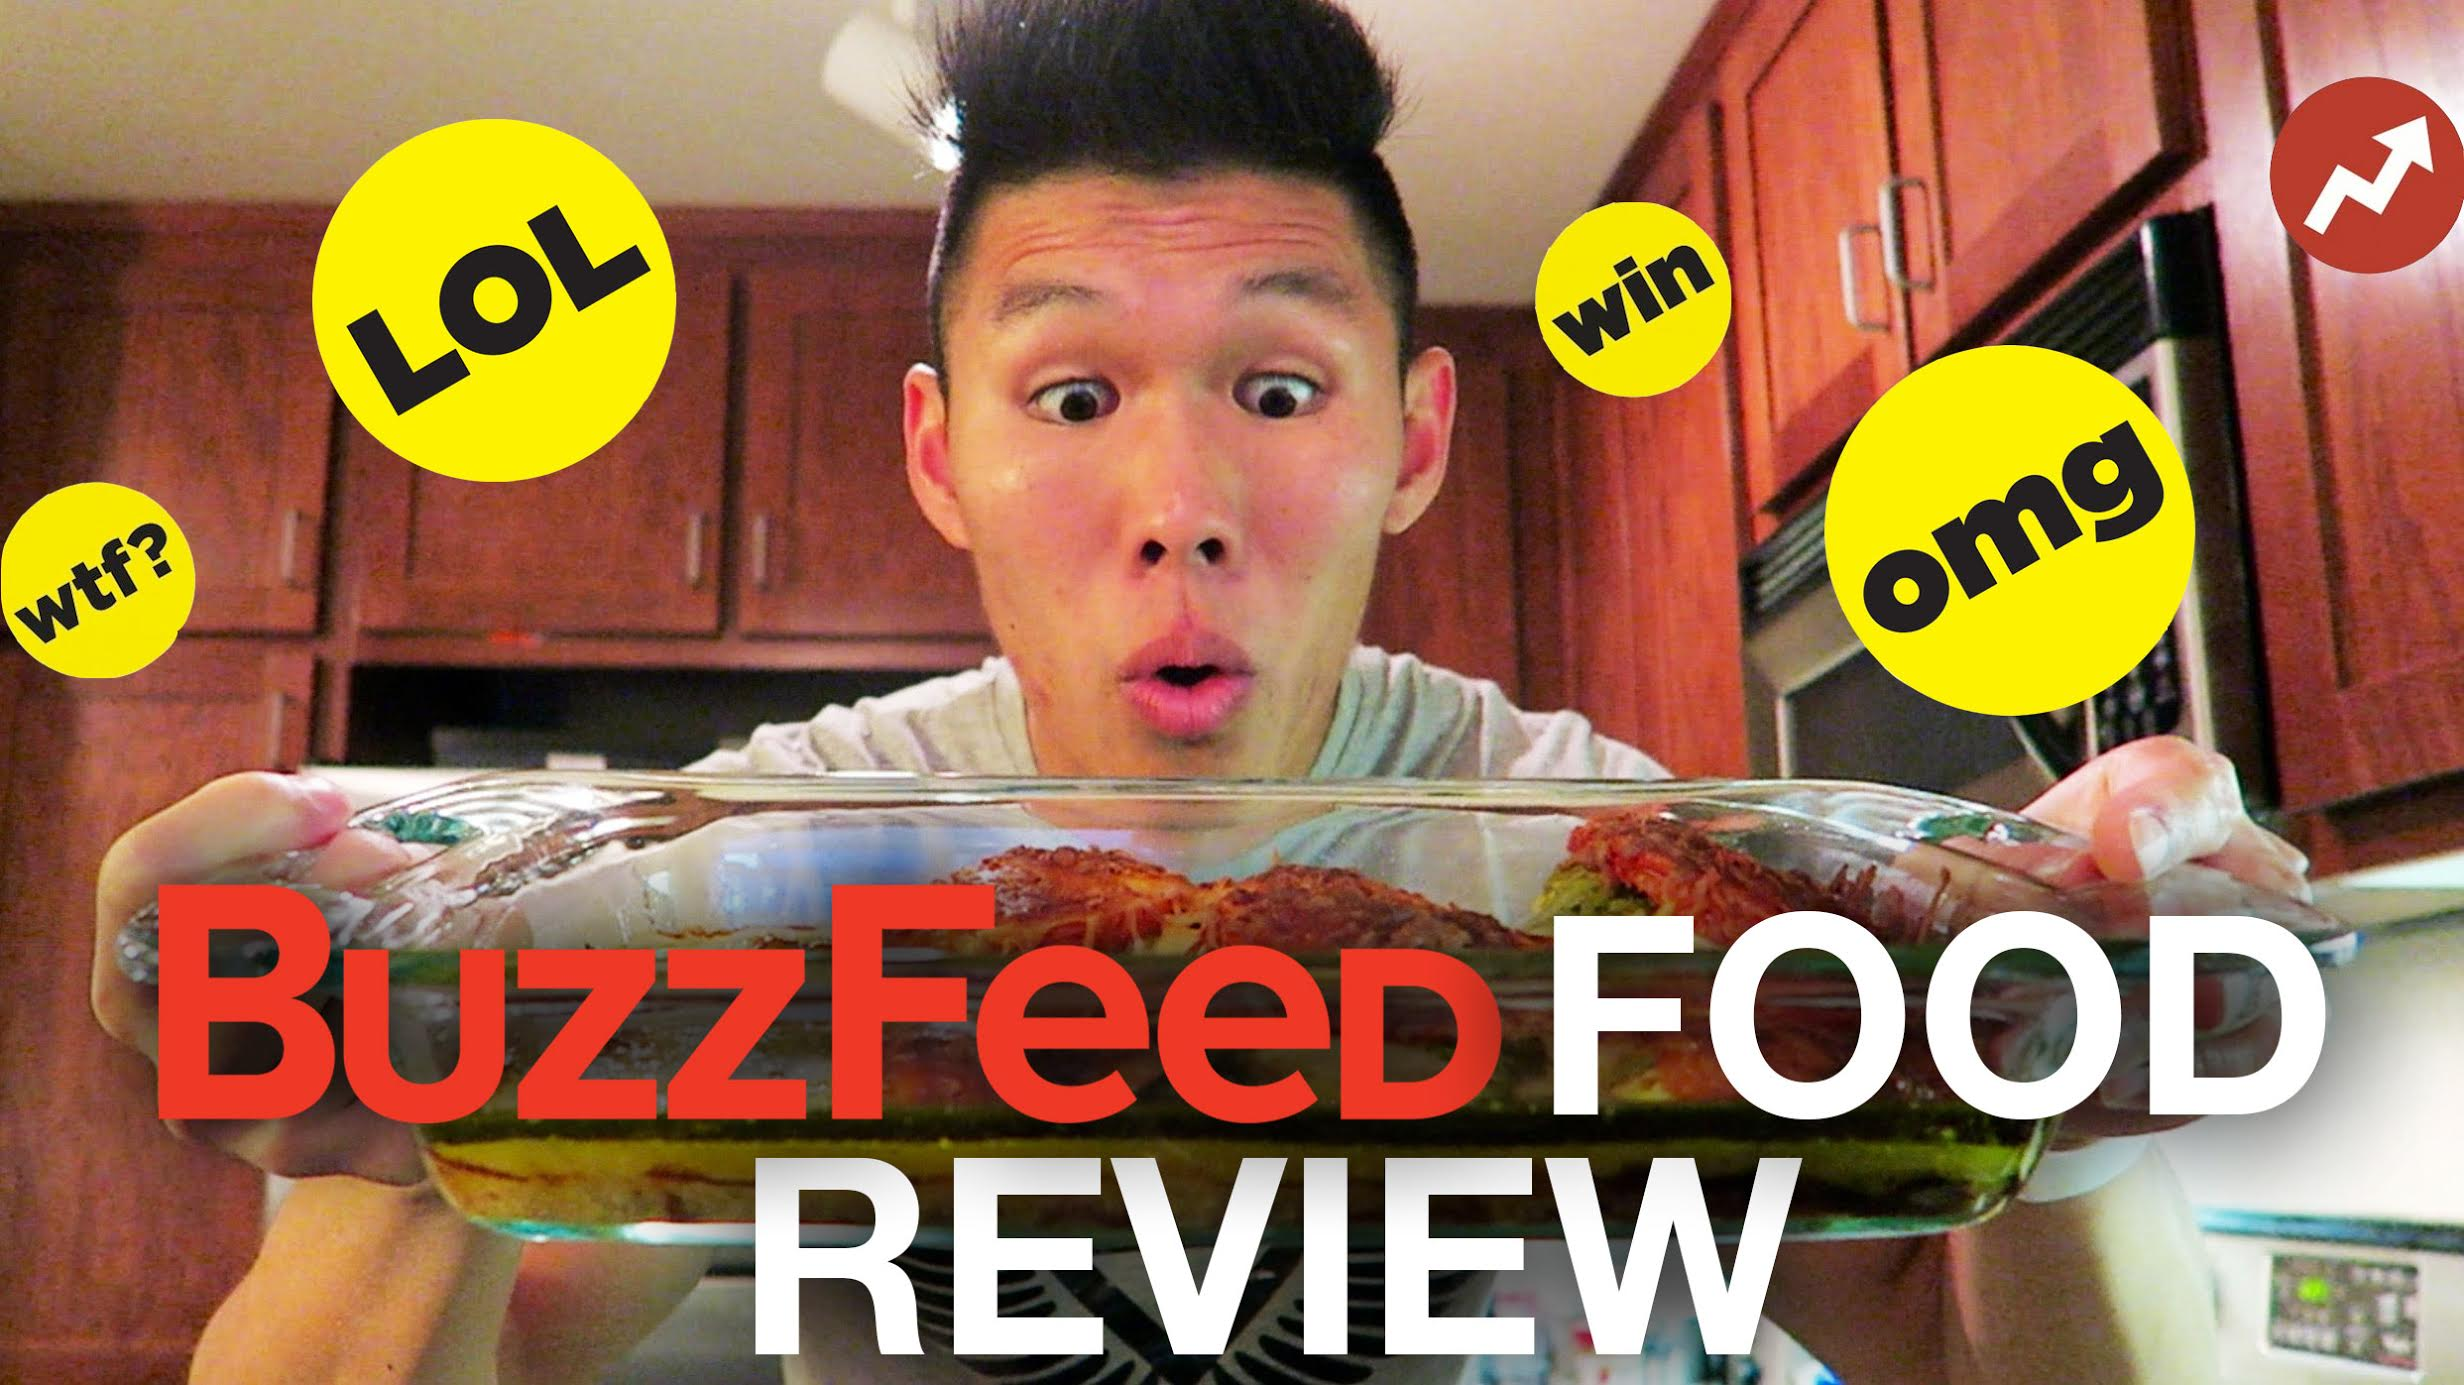 TASTE TESTING BUZZFEED FOOD RECIPES